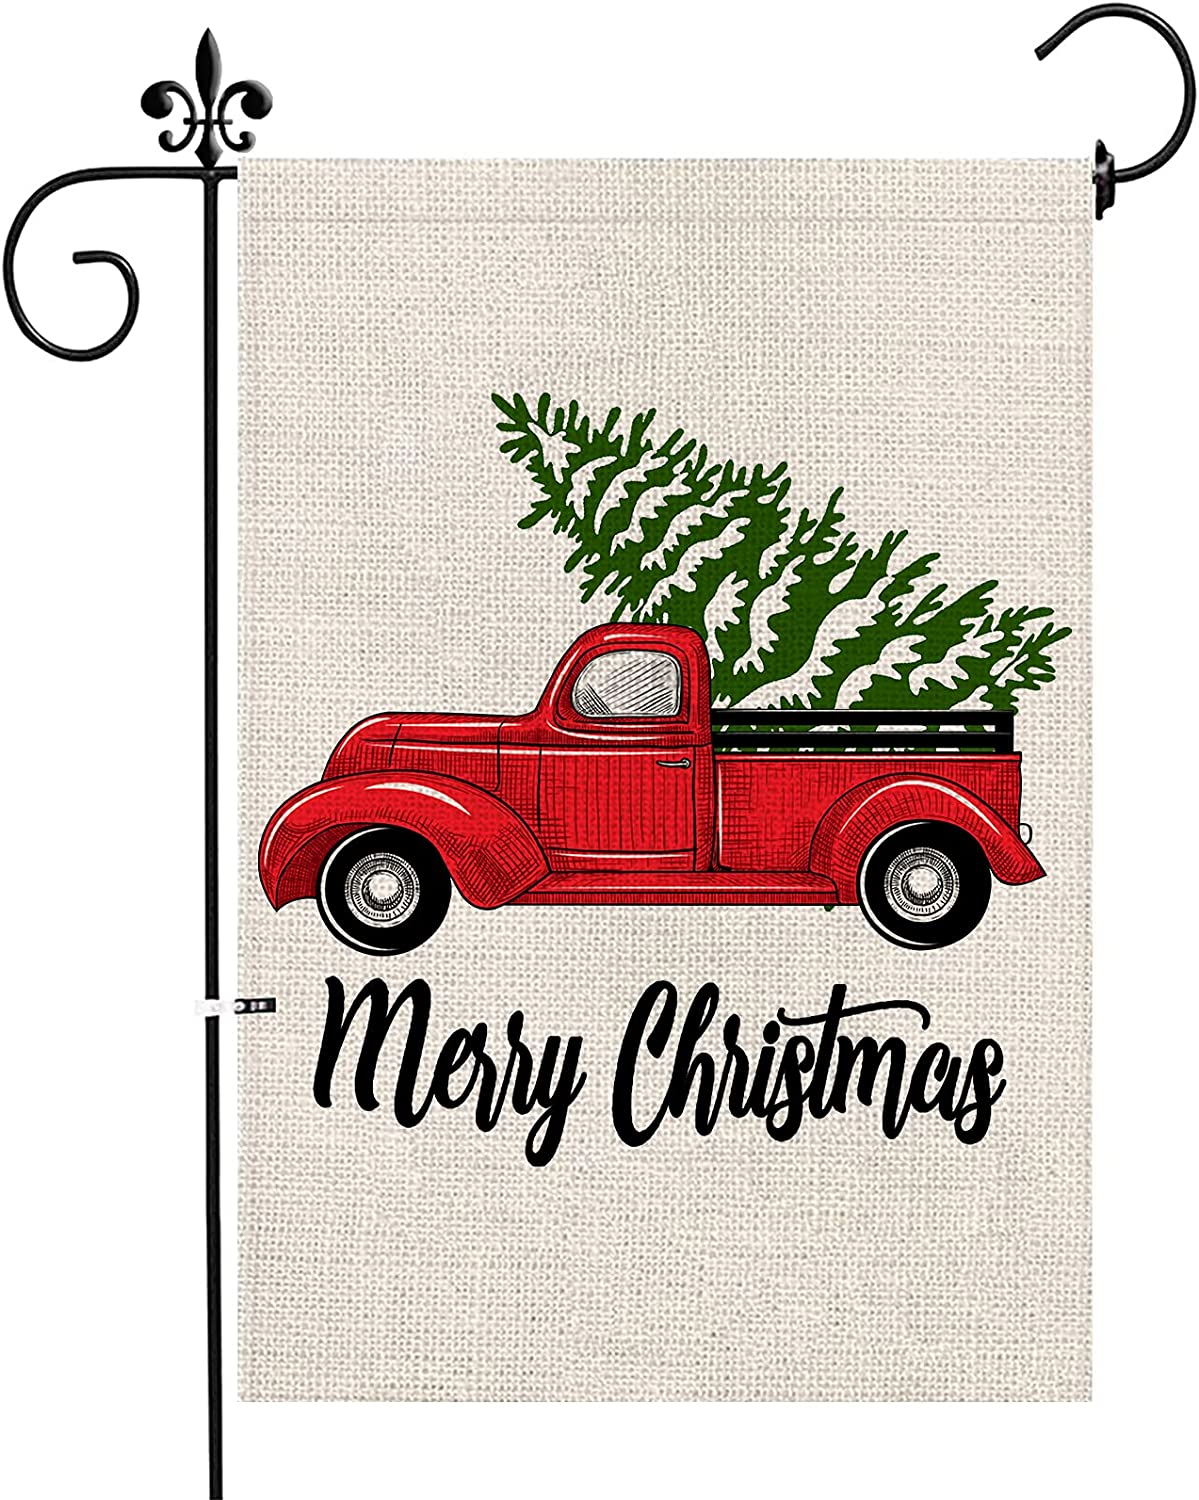 Jackmold Merry Christmas Garden Flag Vintage Tree, Home Xmas Quote House Yard Flag with Red Truck, Rustic Winter Garden Yard Decorations, New Year Seasonal Outdoor Flag 12 x 18 Holiday